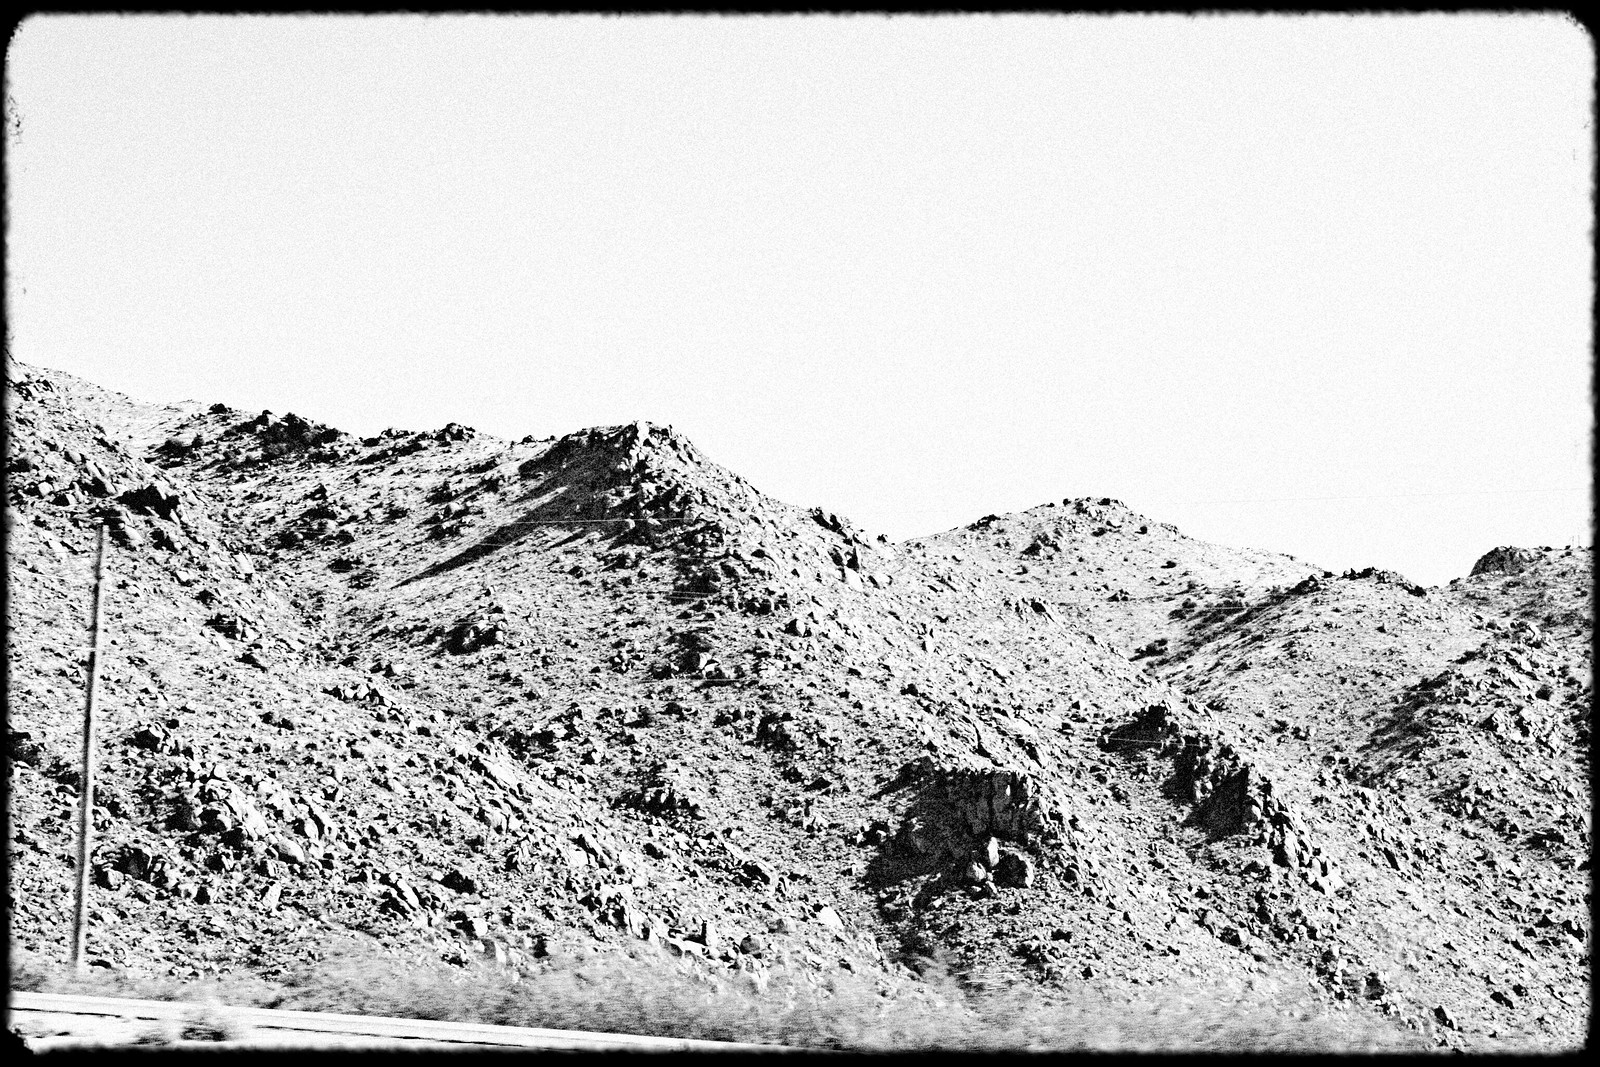 Mountains, West Texas, 2006